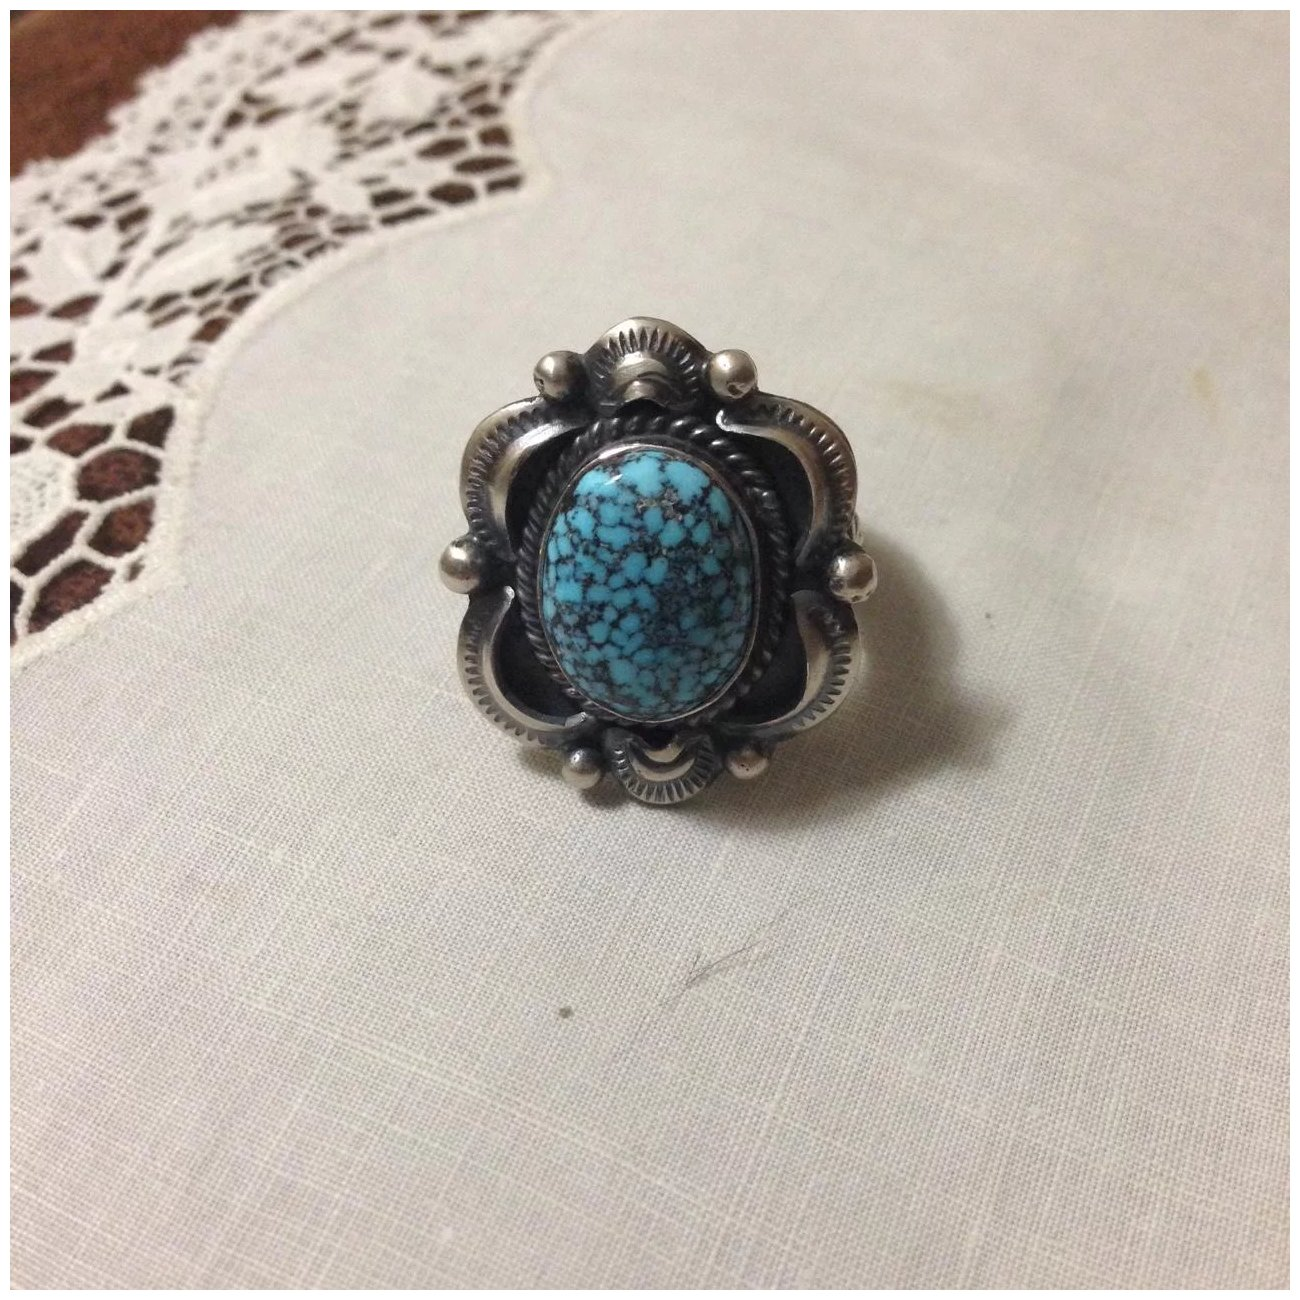 Details about  /Navajo Handmade Old Style Sterling Silver Kingman Web Ring Gilbert Tom